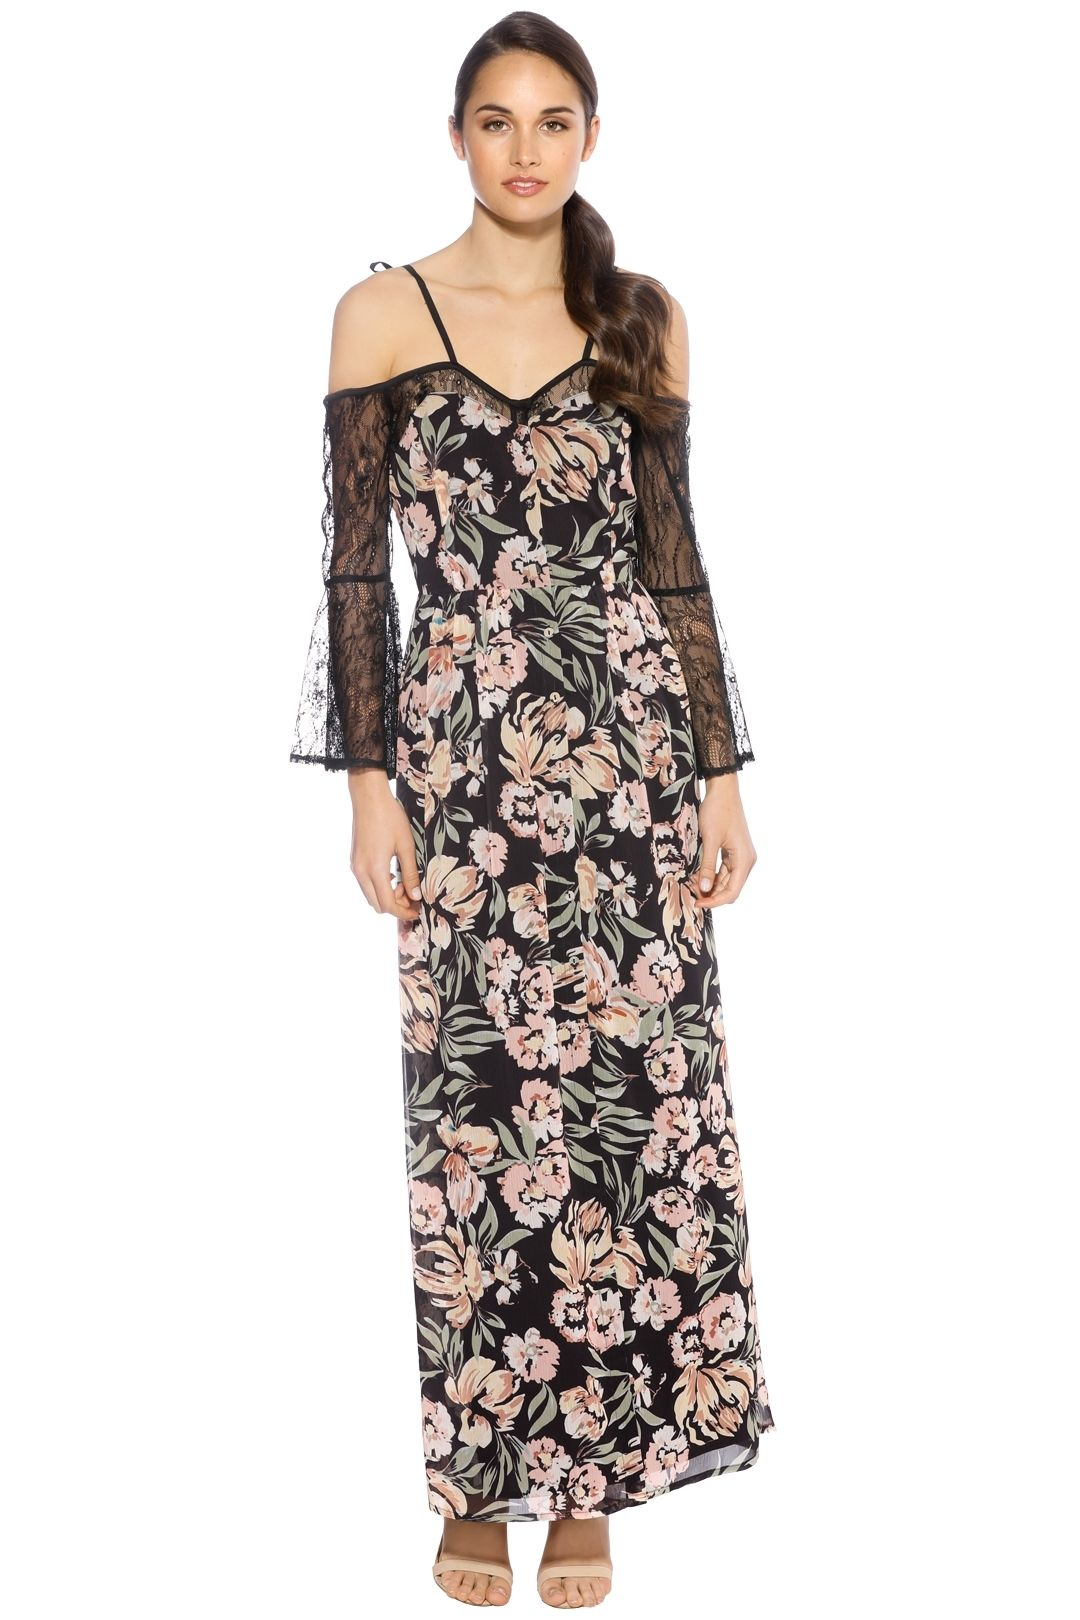 We Are Kindred - Jojo Lace Insert Dress - Floral Black - Front